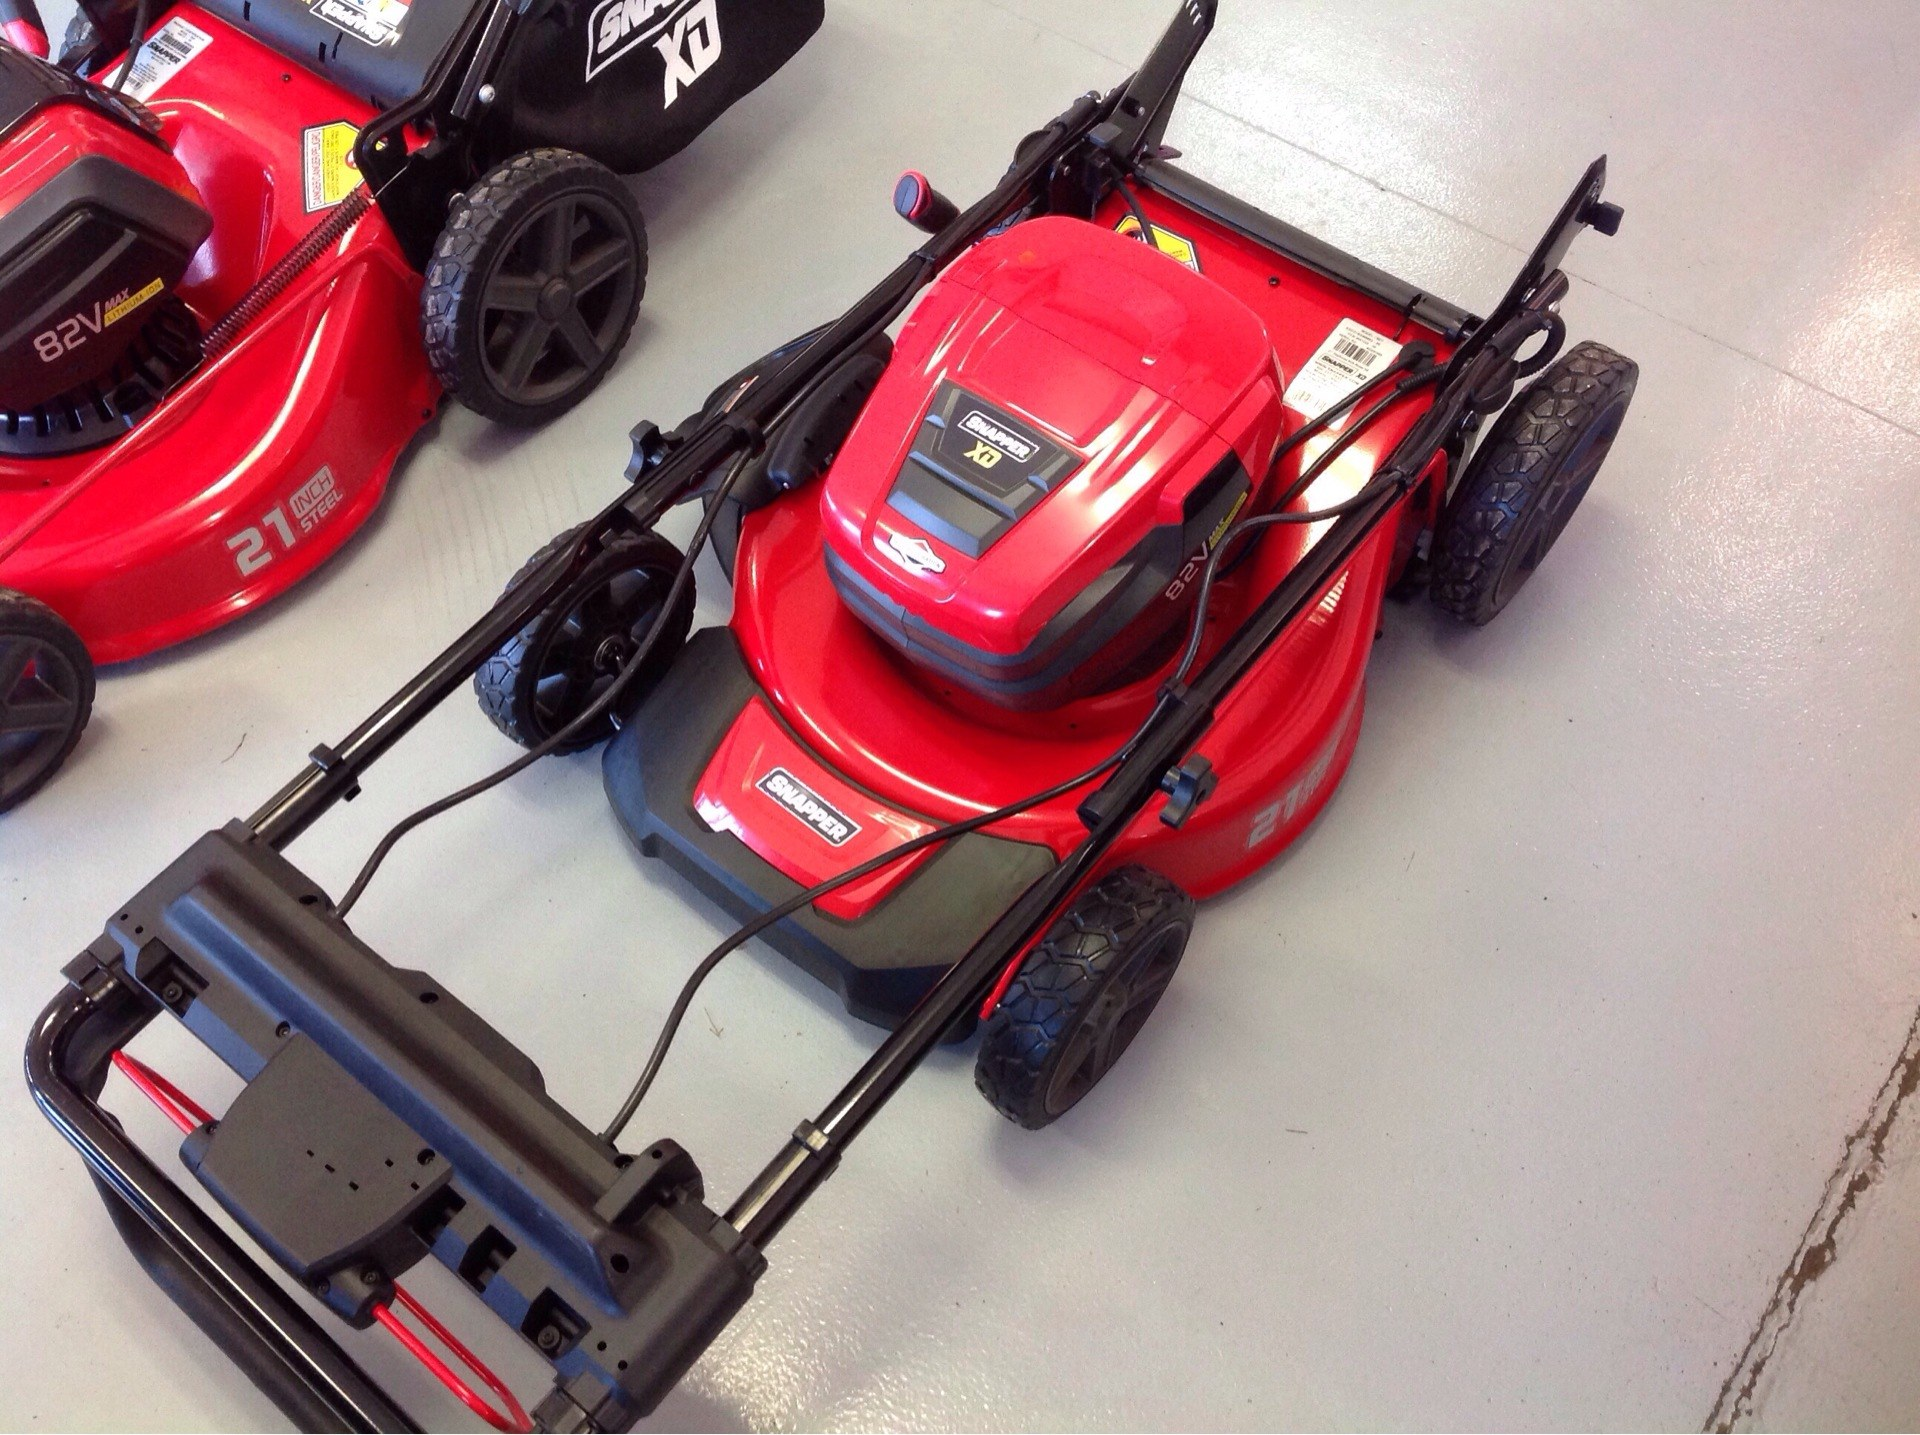 Snapper SXD21SSWM82 21 in. 82V Max StepSense Automatic Drive in Lafayette, Indiana - Photo 4